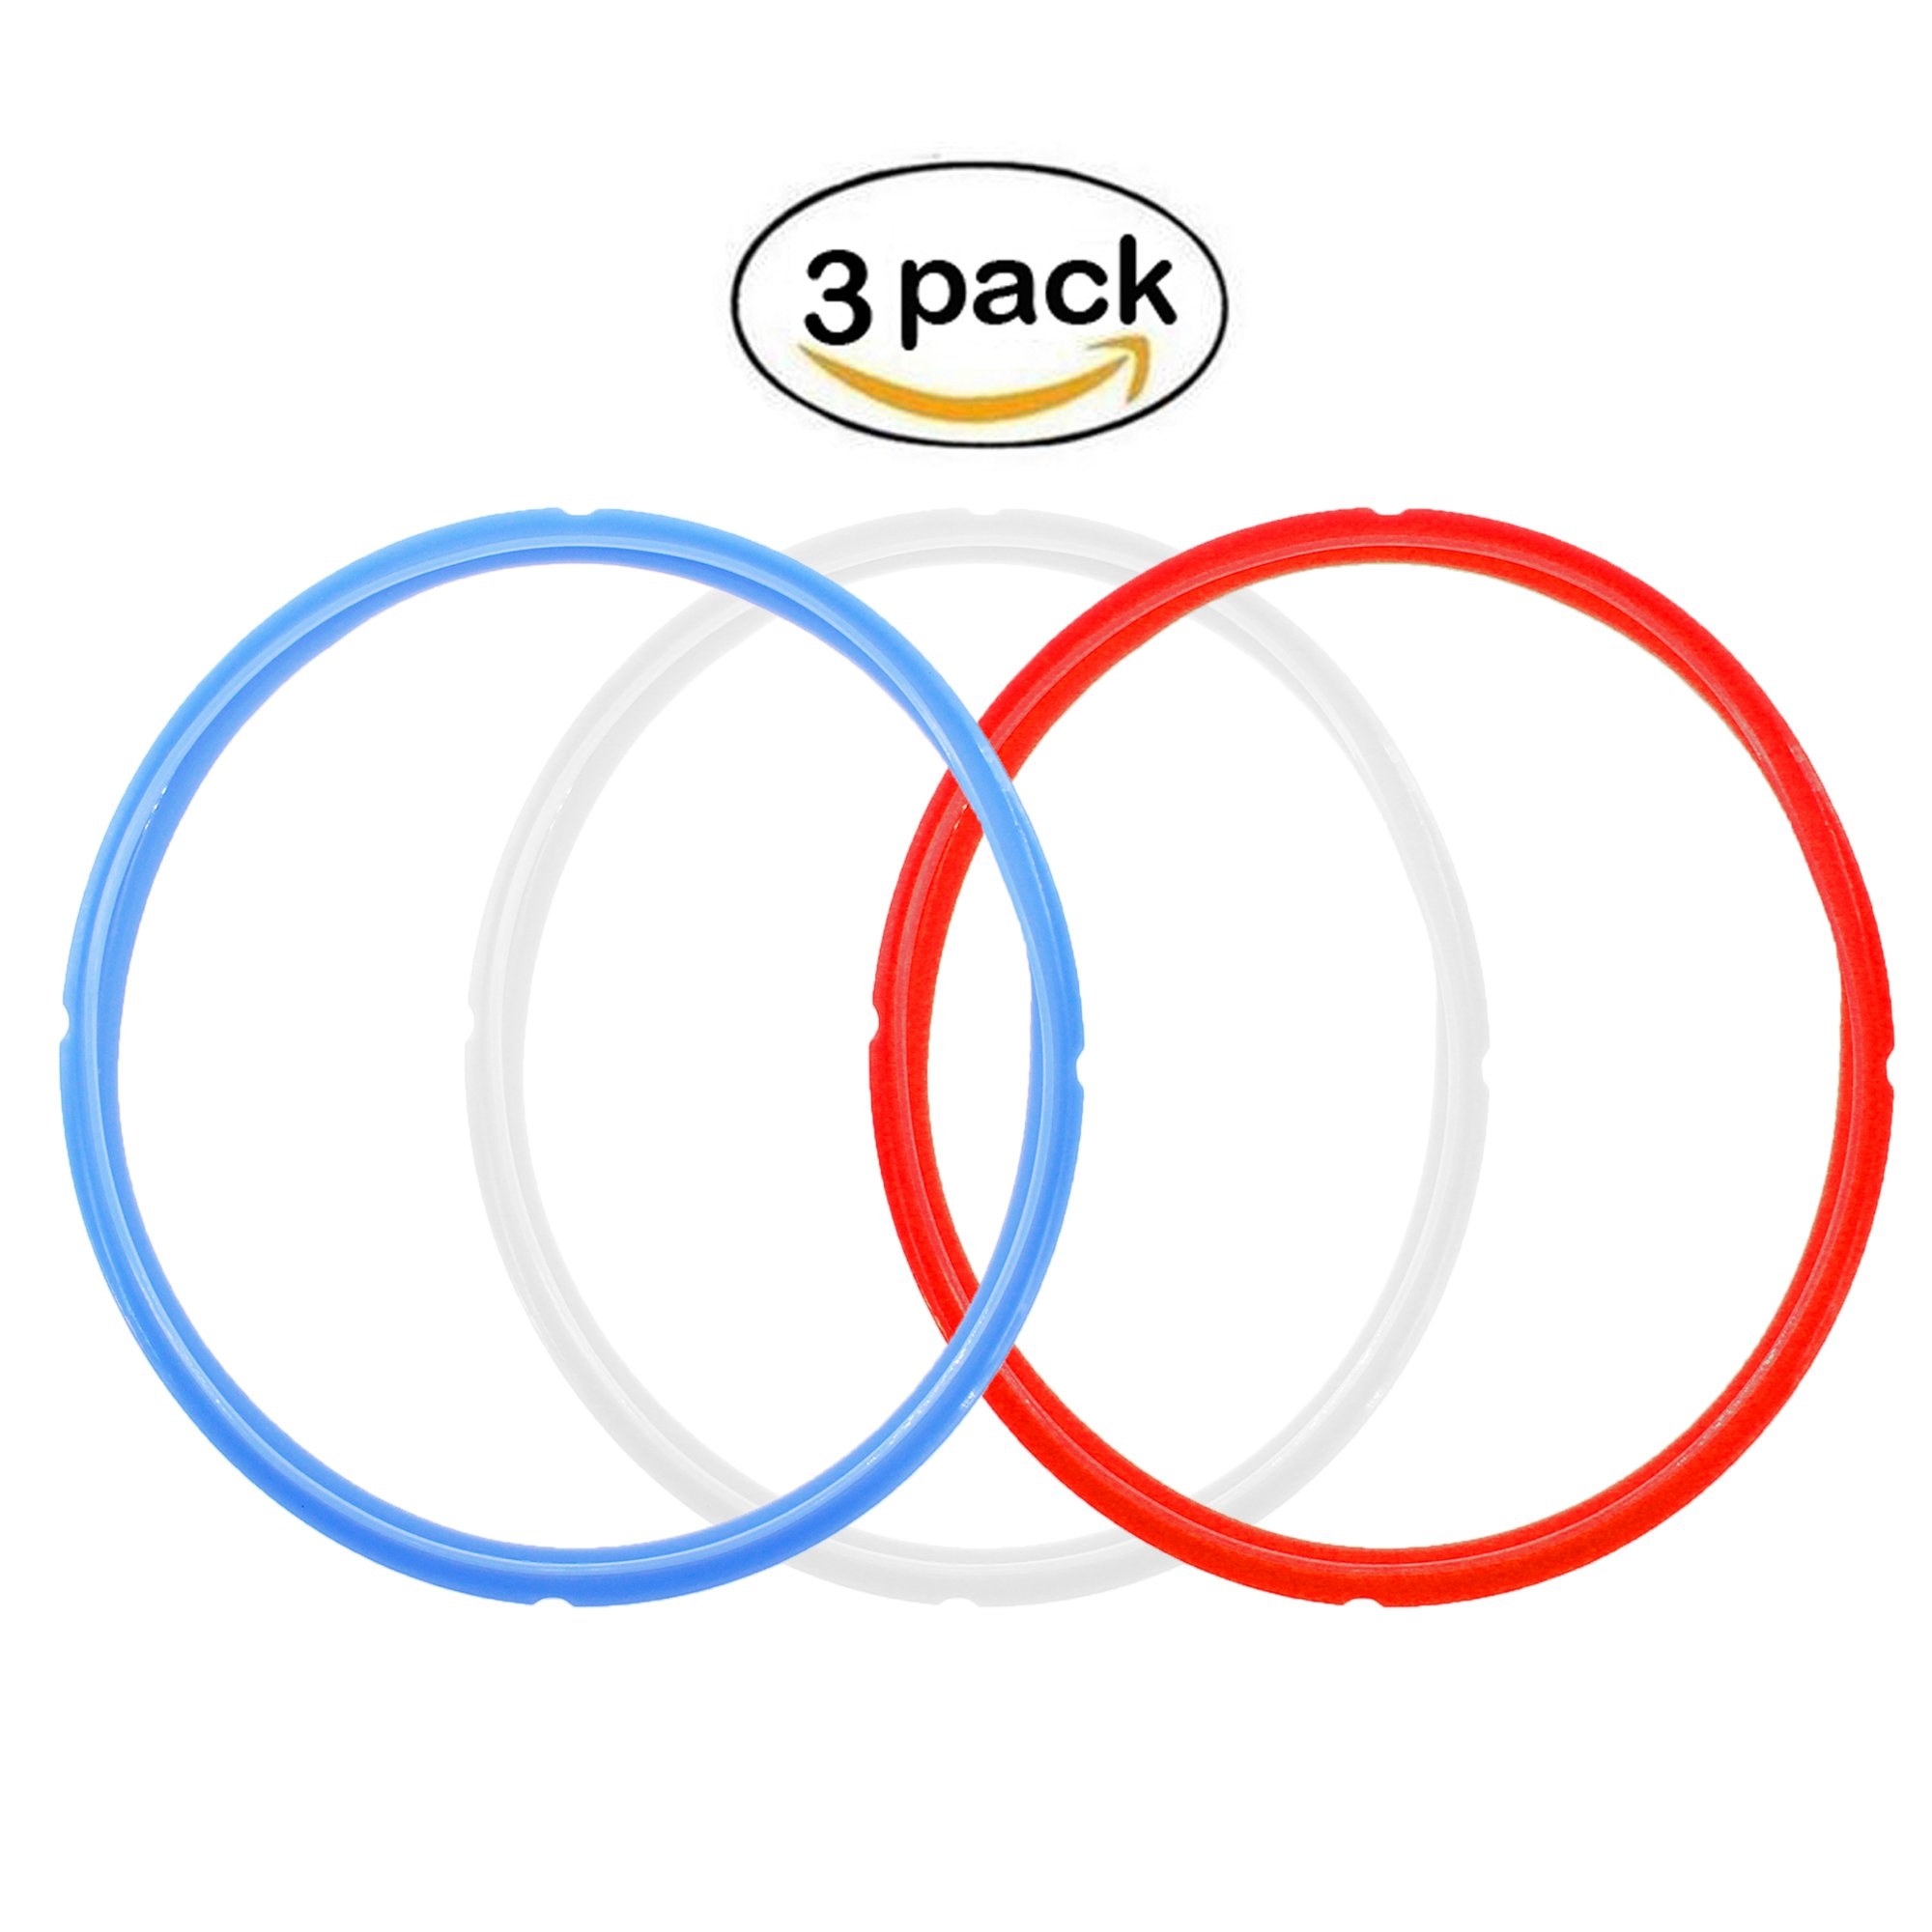 3 Pack Colorful Instant Pot Sealing Ring for 5 Quart or 6 Quart Models,Silicone Sealing Ring for Instant pot accessories (3 Pack)